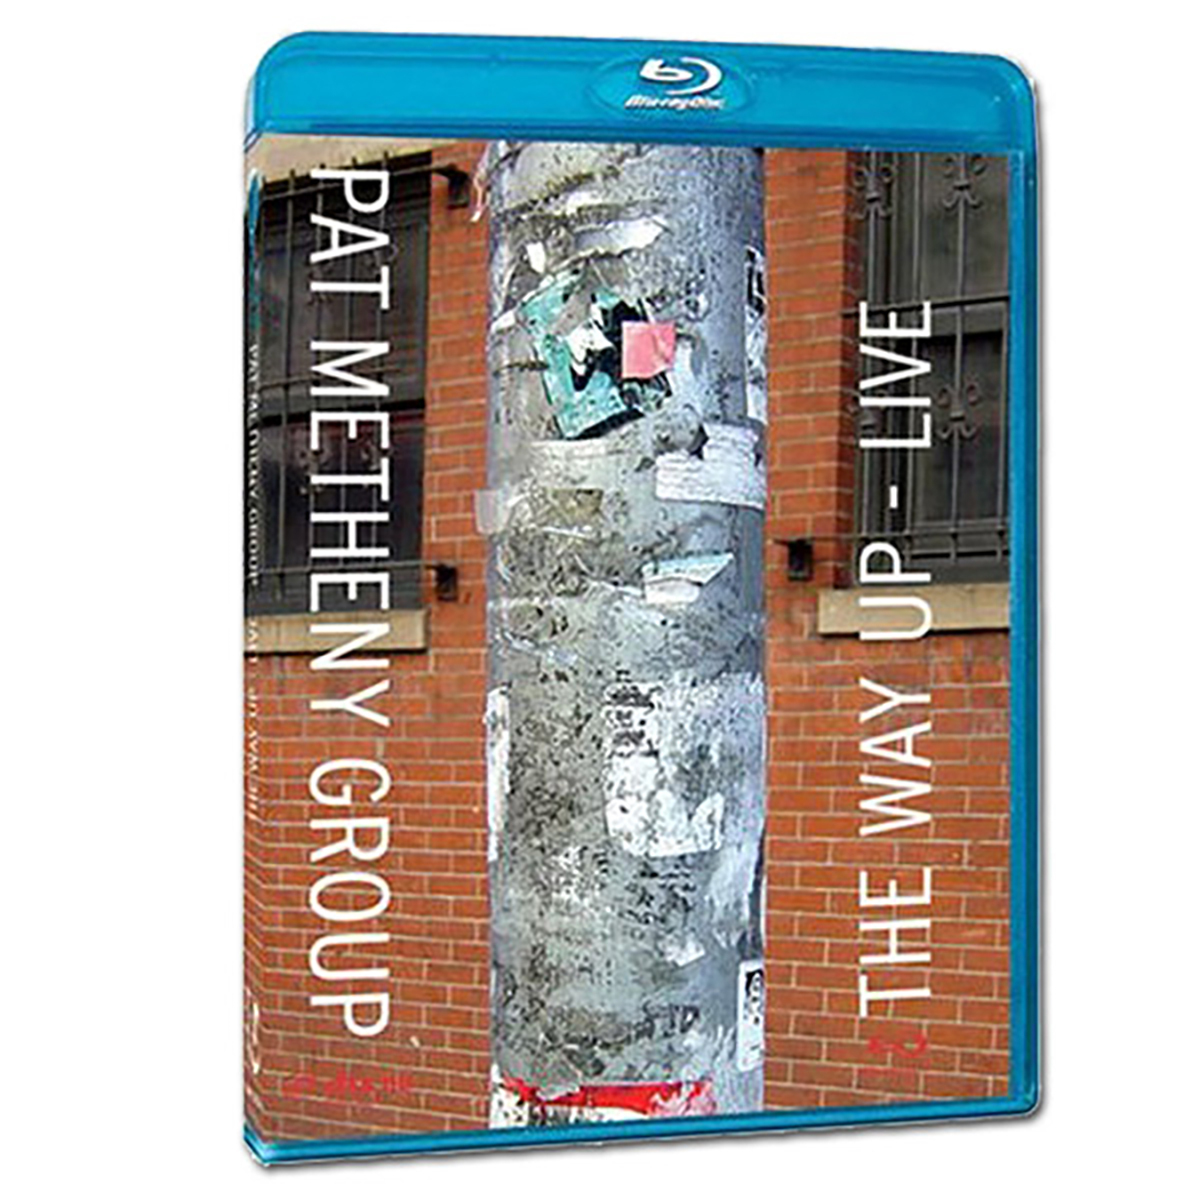 Pat Metheny - The Way Up Live Blue Ray-DVD NTSC